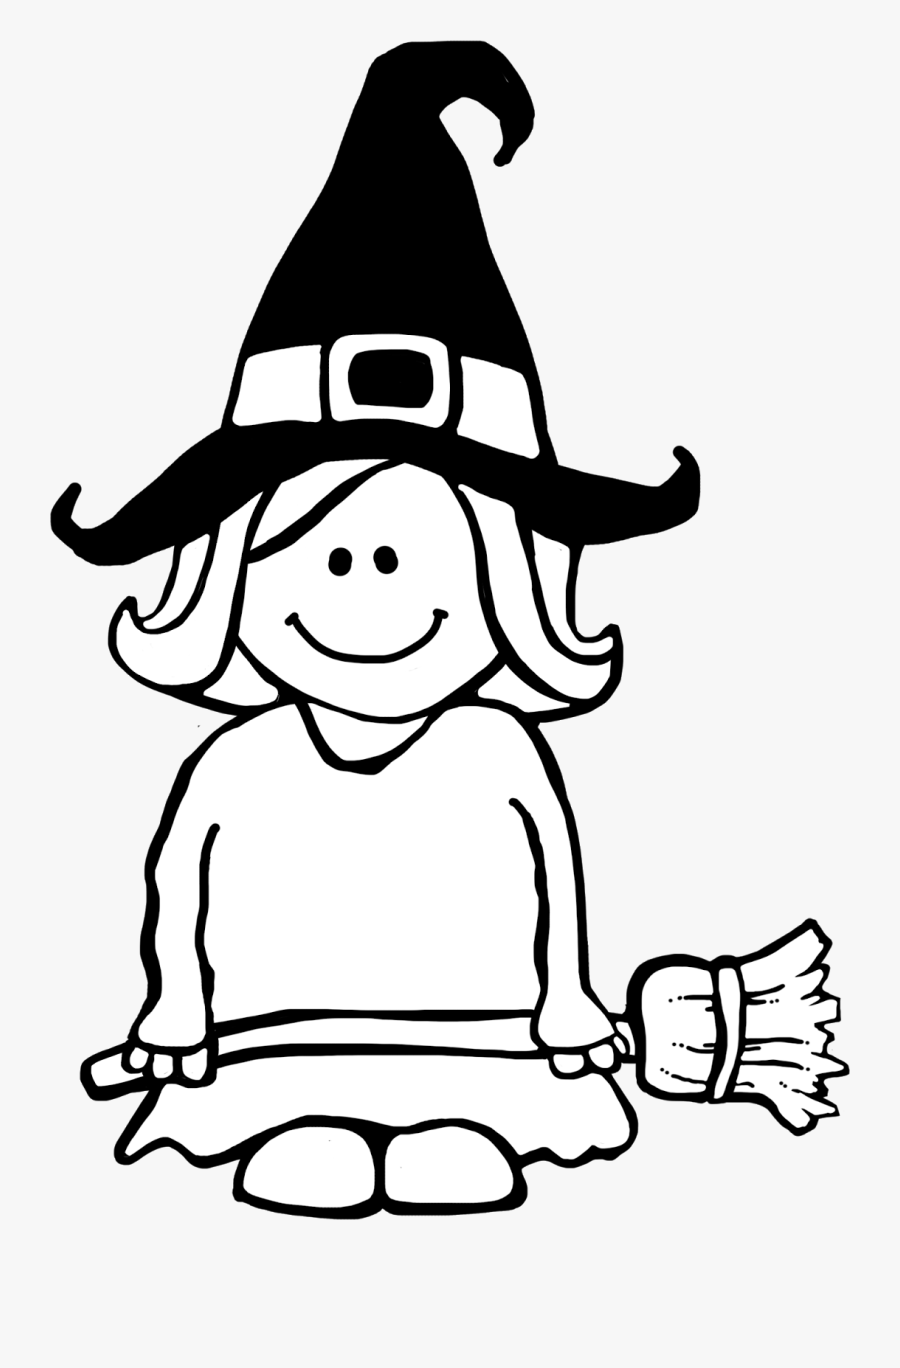 Wisdom - Clipart - Simple Halloween Pictures To Draw, Transparent Clipart